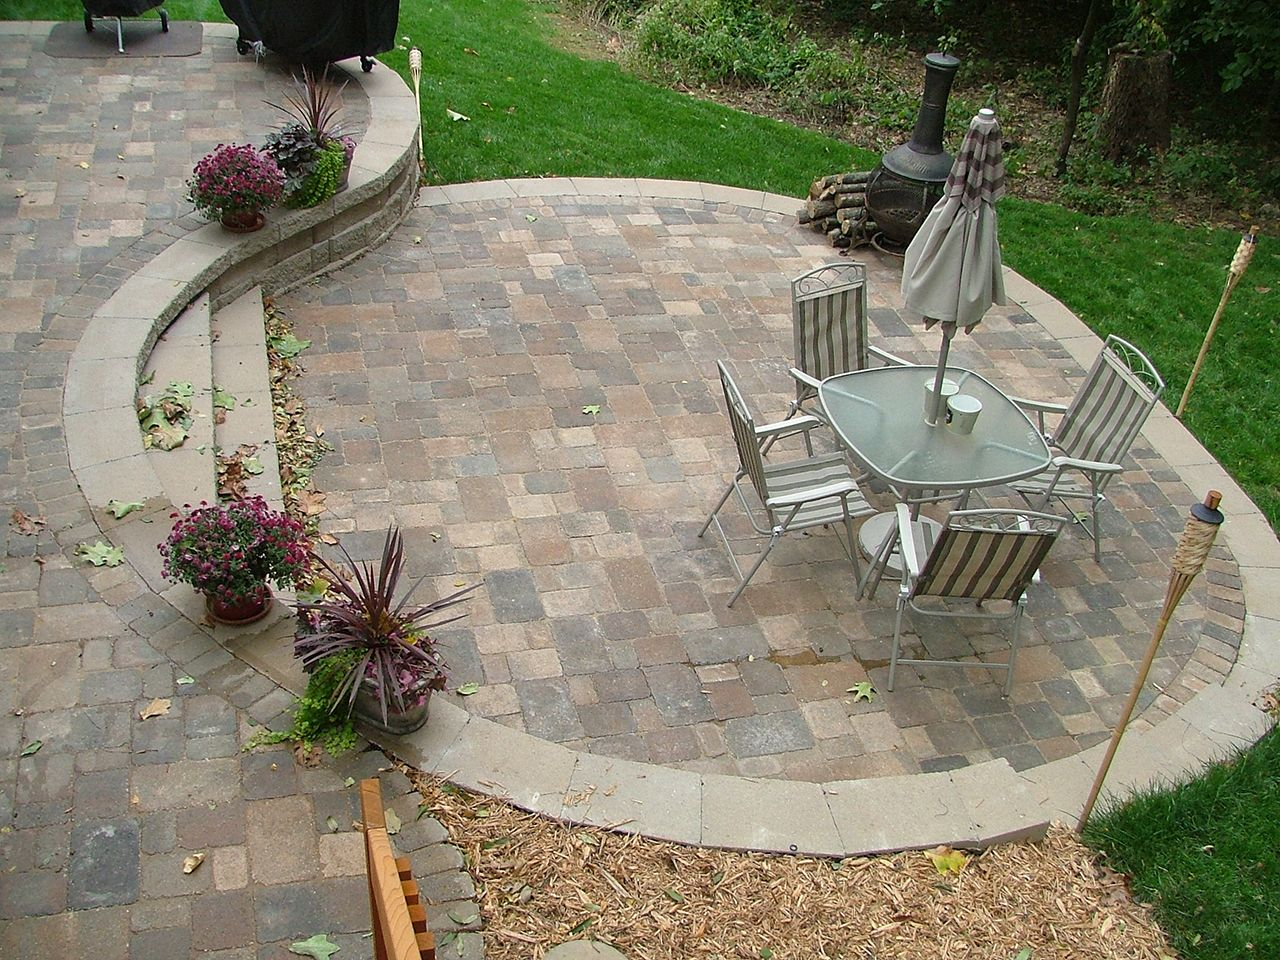 Stone Patio Design Ideas 1000 ideas about paver patio designs on pinterest pavers patio patio design and grill station 1000 Images About Patio On Pinterest Stone Patio Designs Paver Patio Designs And Paver Designs